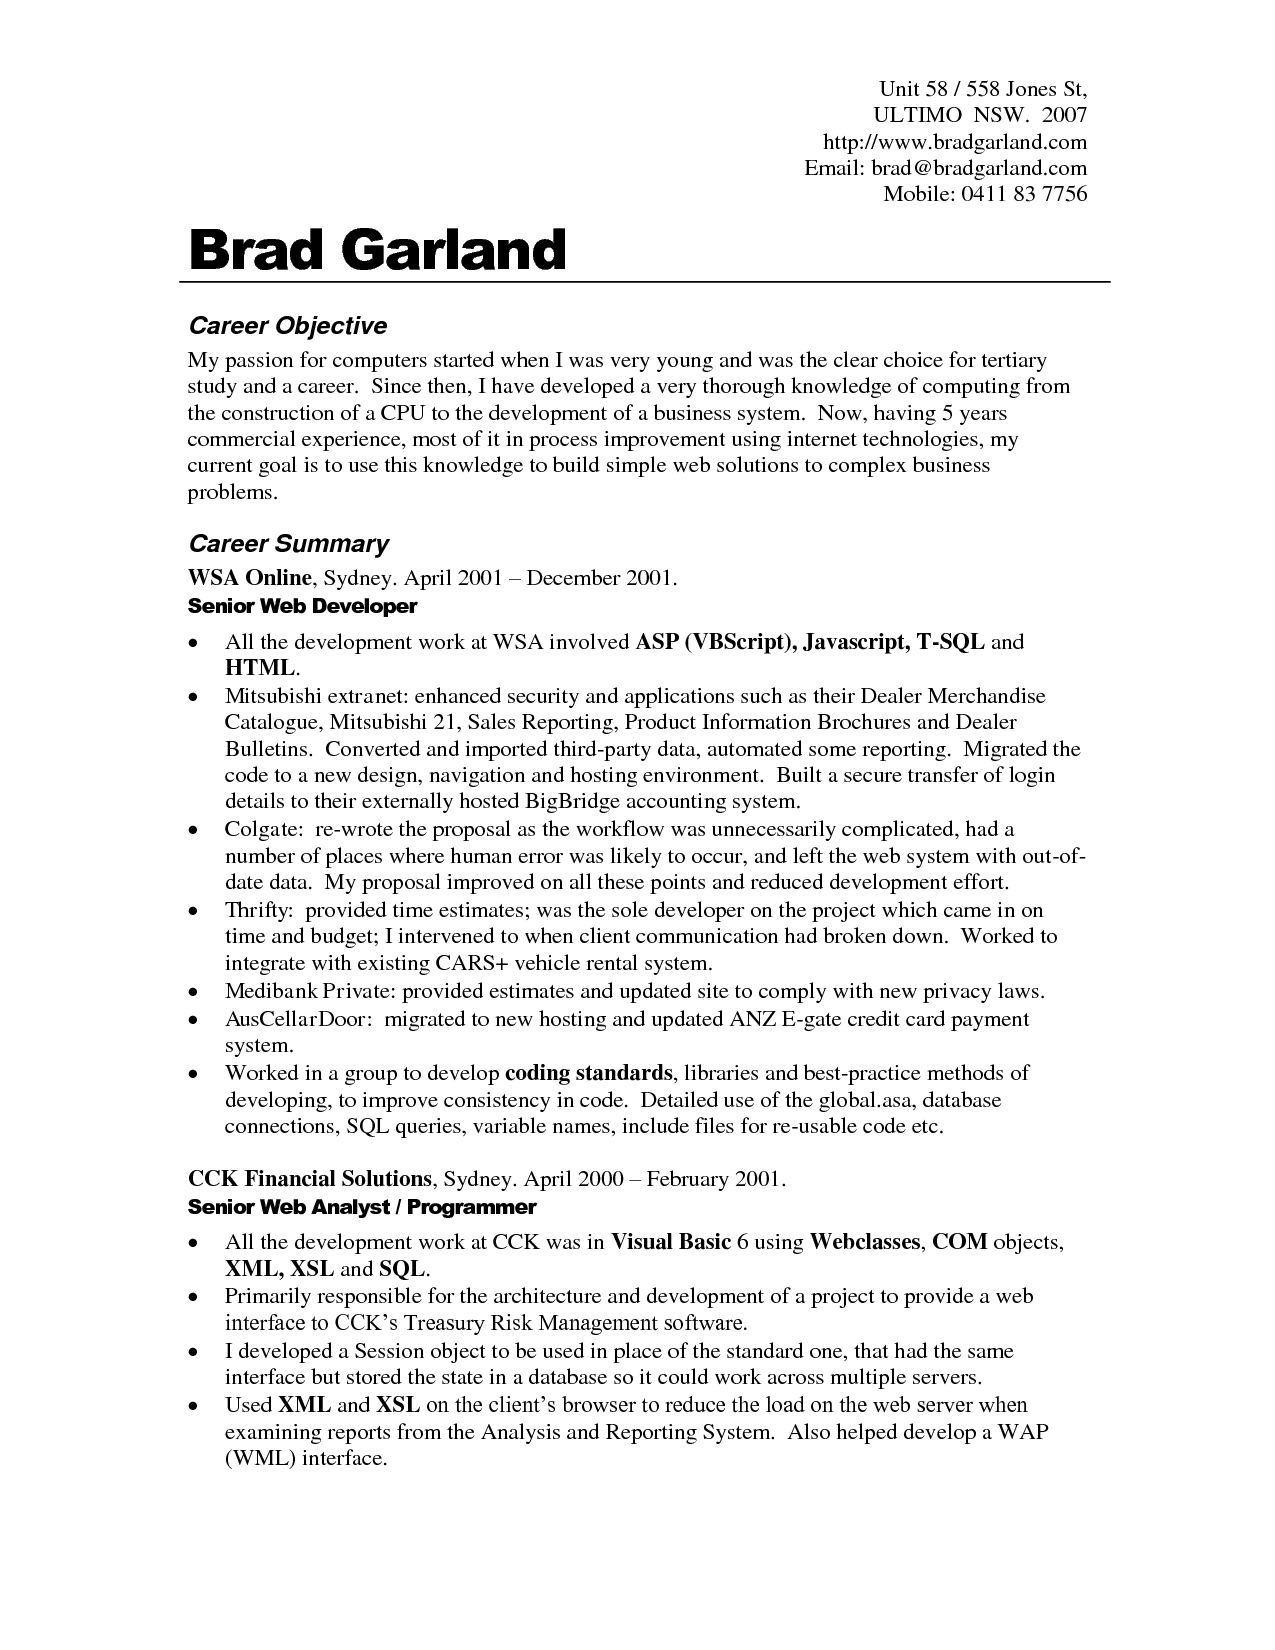 Objective In A Resume Sample Resume Action Verbs For Lawyers Formatting Back Post